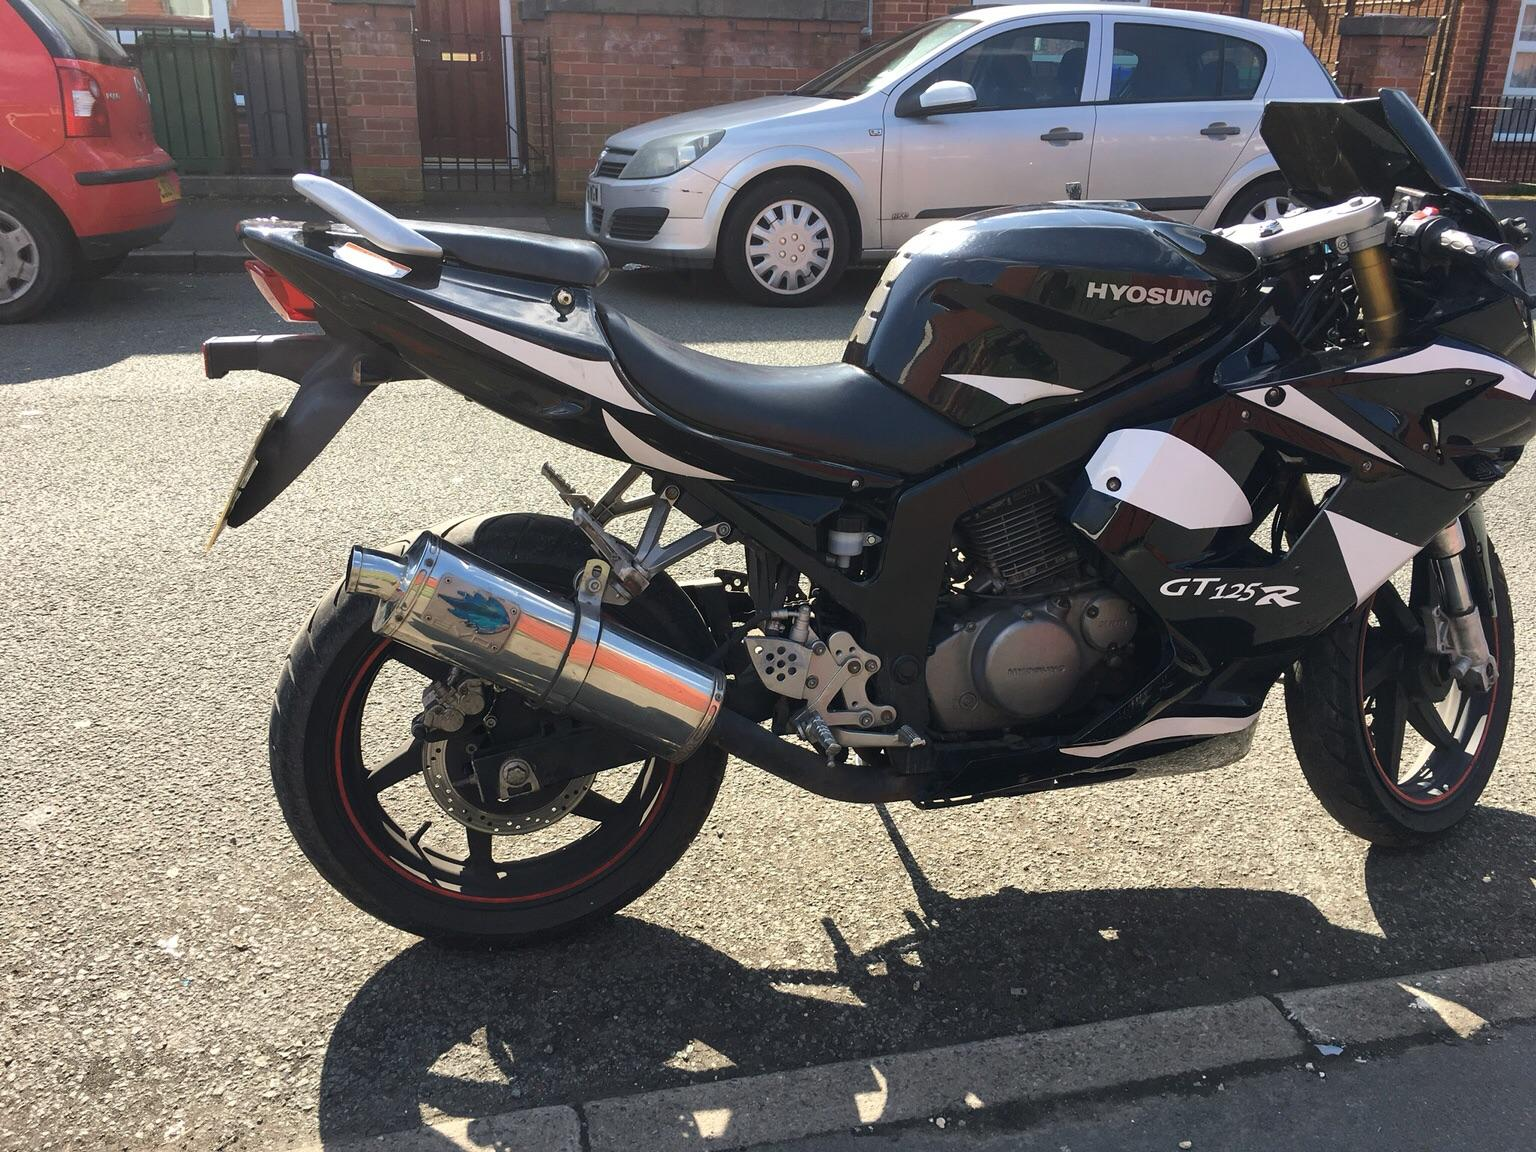 Hyosung Racerep GT125R 125cc Motorcycle Learner Legal